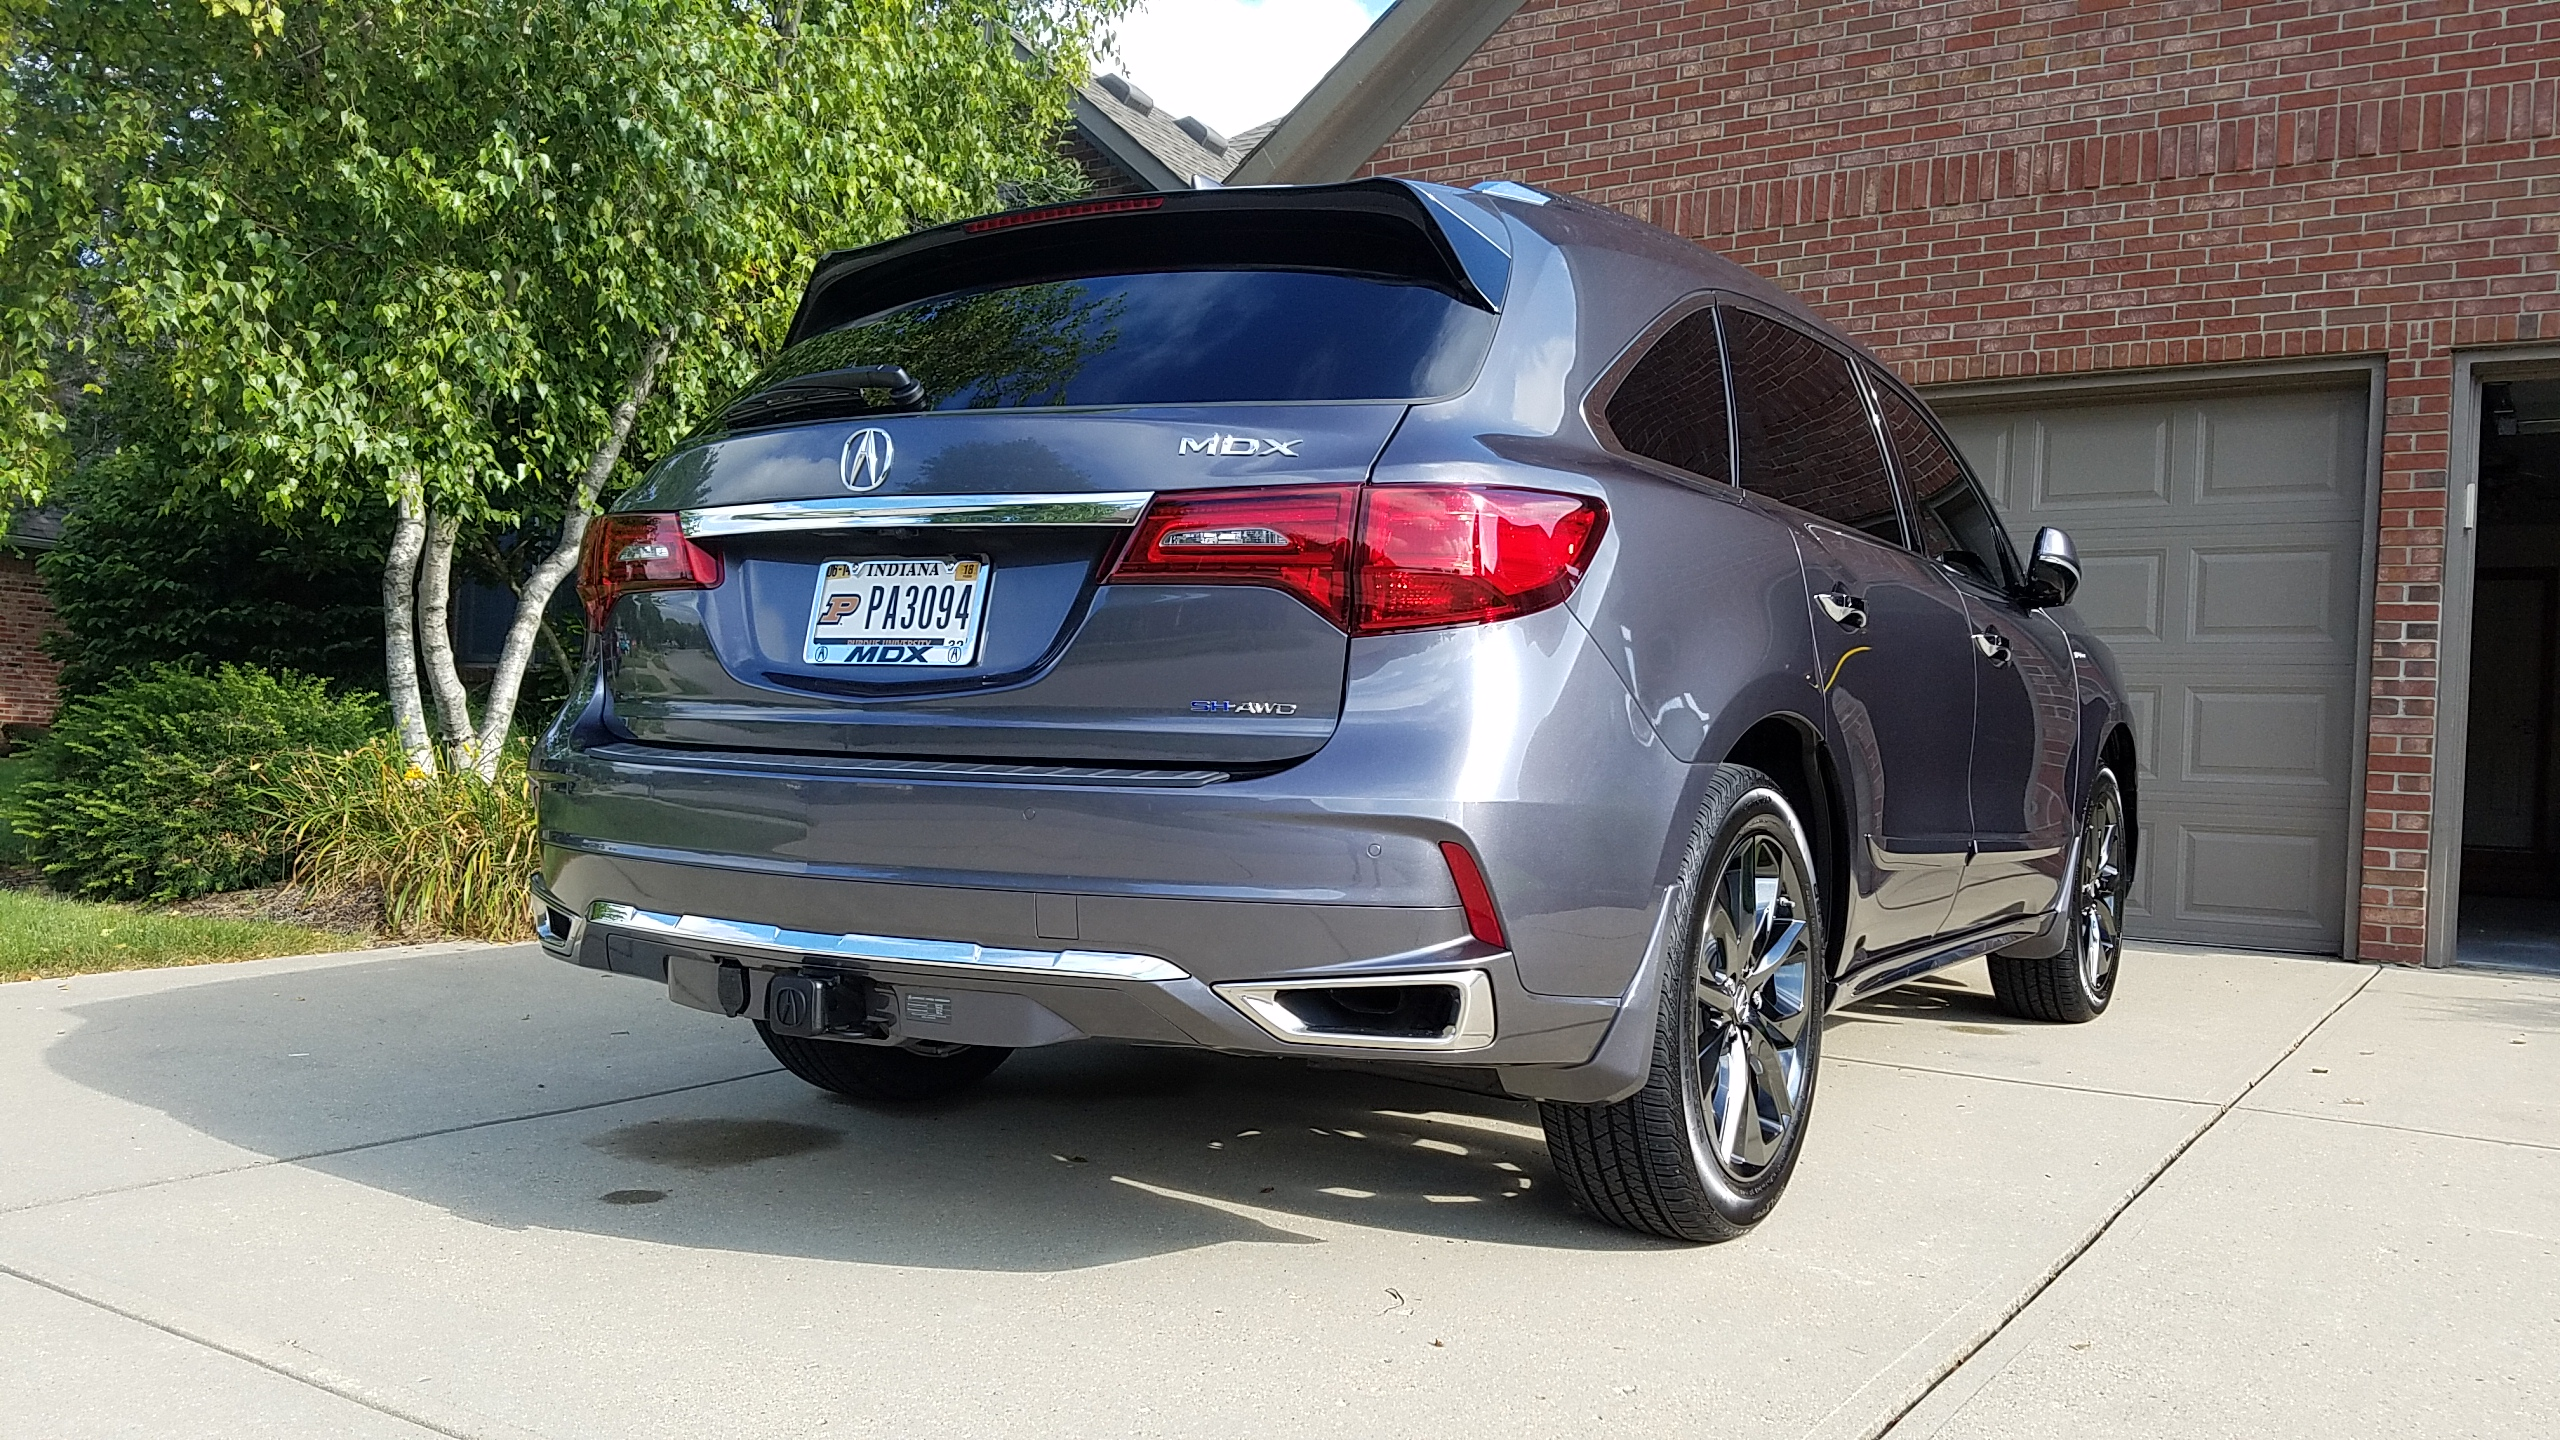 Hybrid With Tow Hitch And Painted Splash Guards Photos - Tow hitch for acura mdx